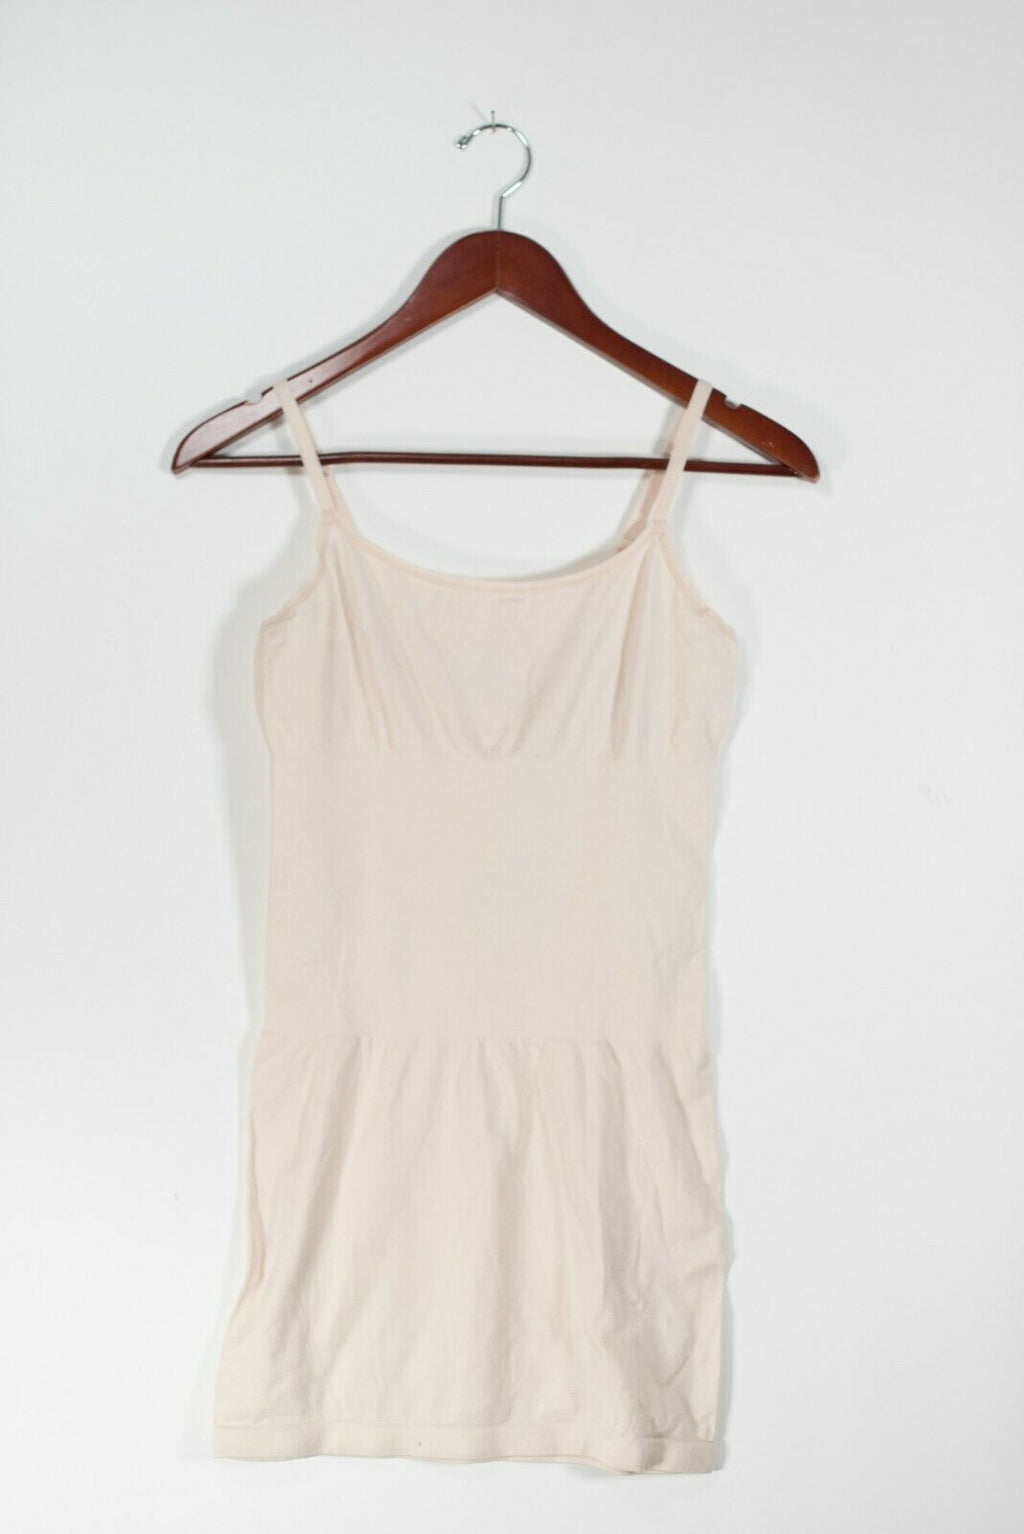 Yummie Heather Thompson Womens Size M/L Beige Tank Top Waist Control Stretch Tee